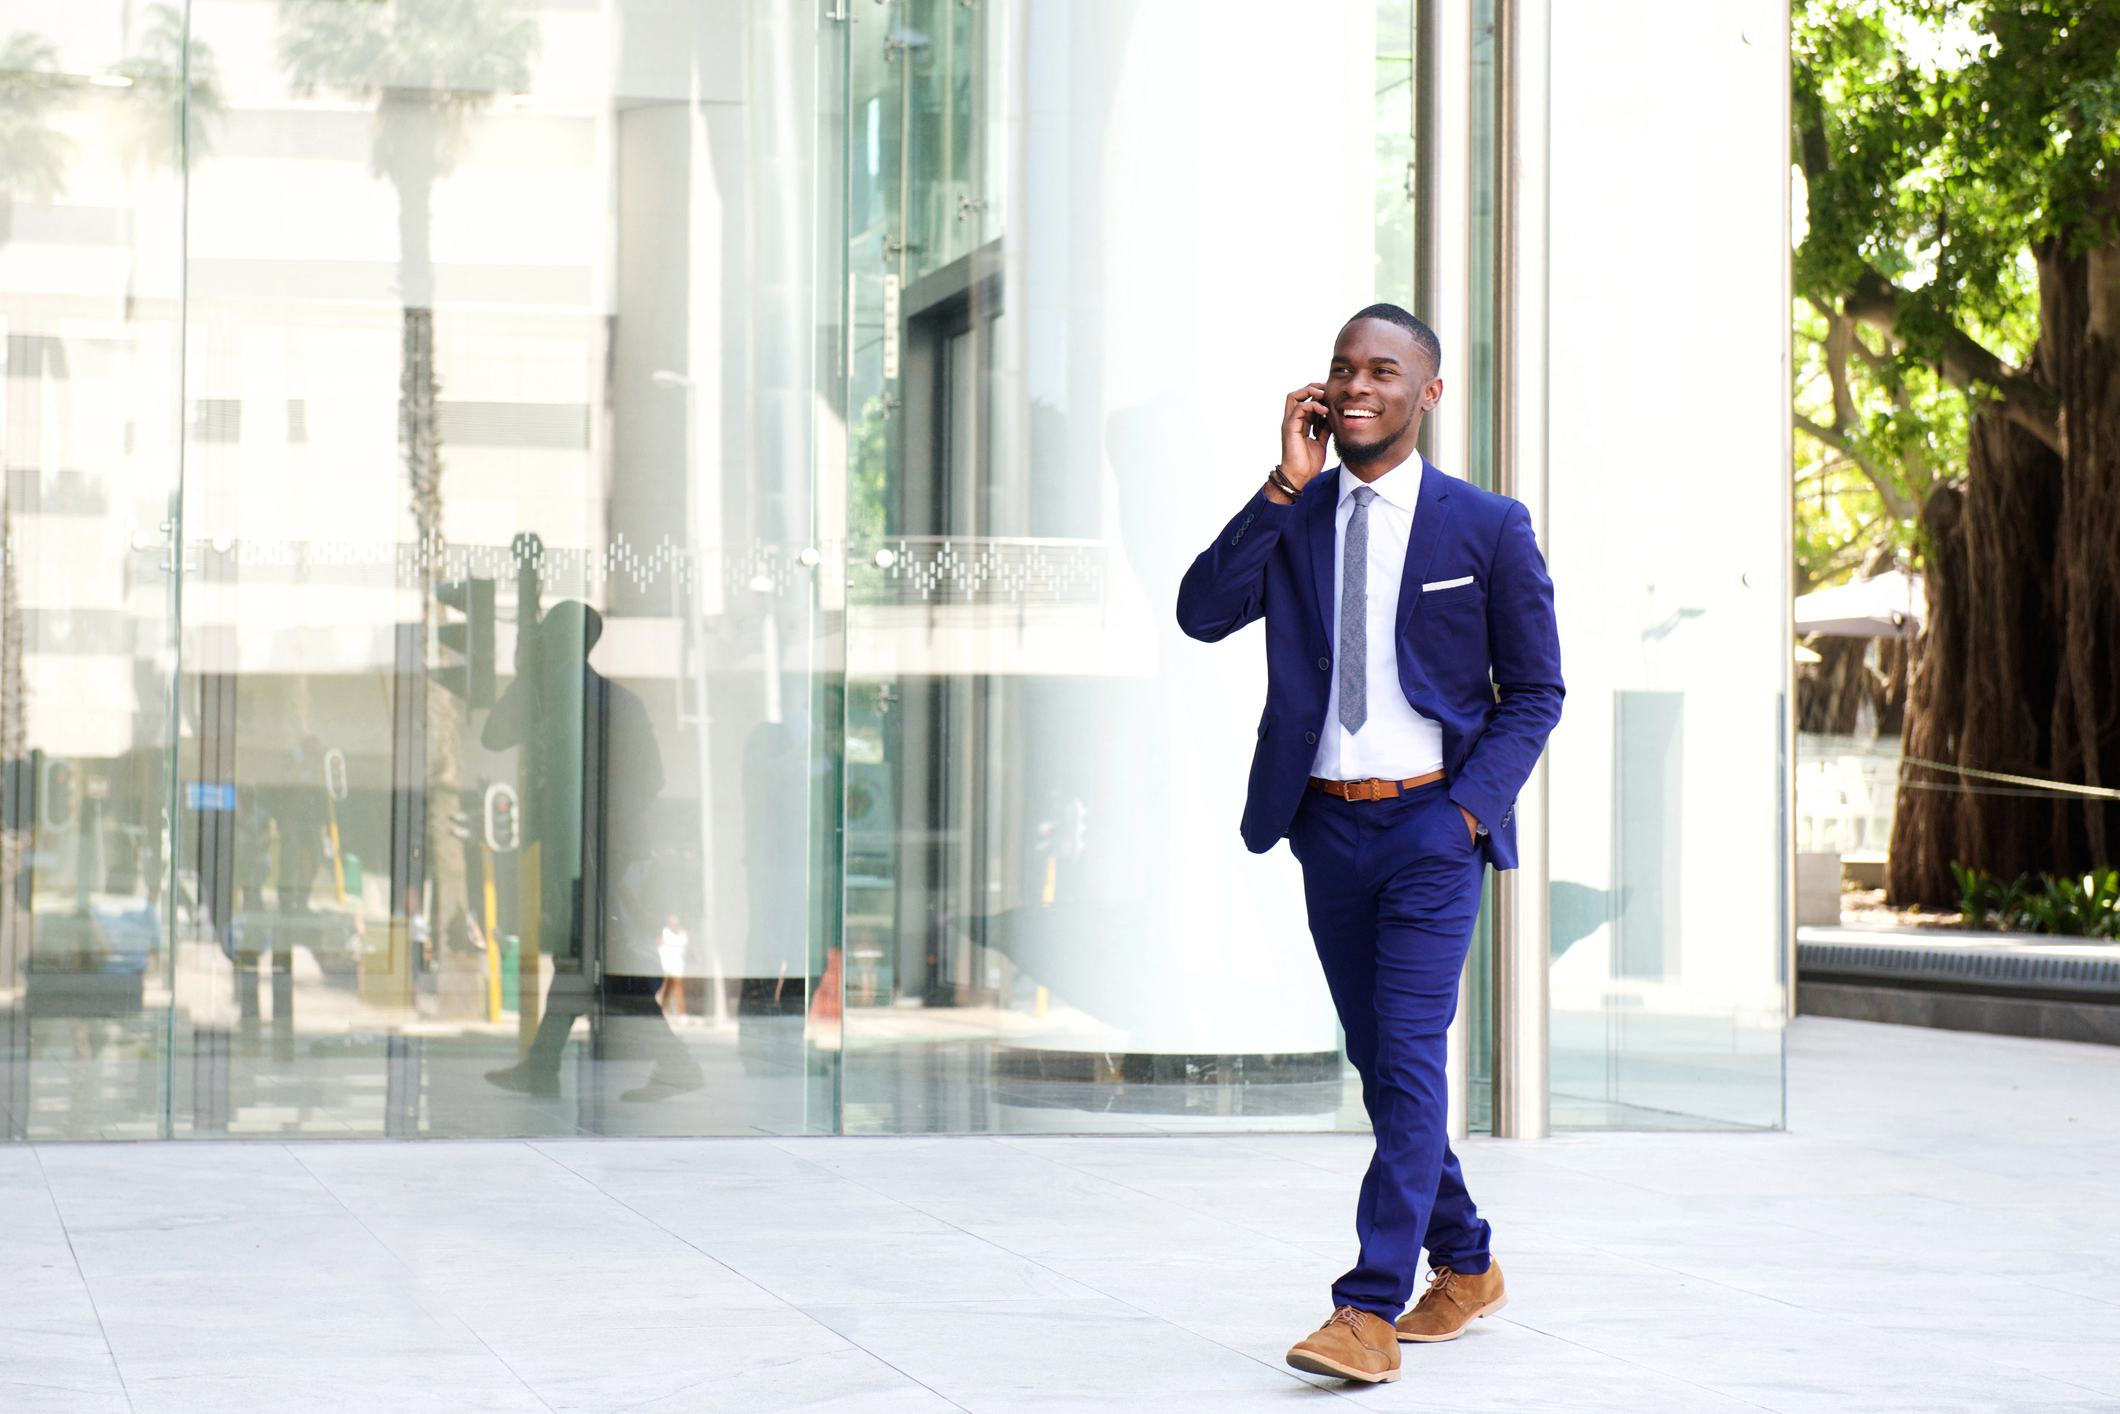 Business man on mobile phone outside office building